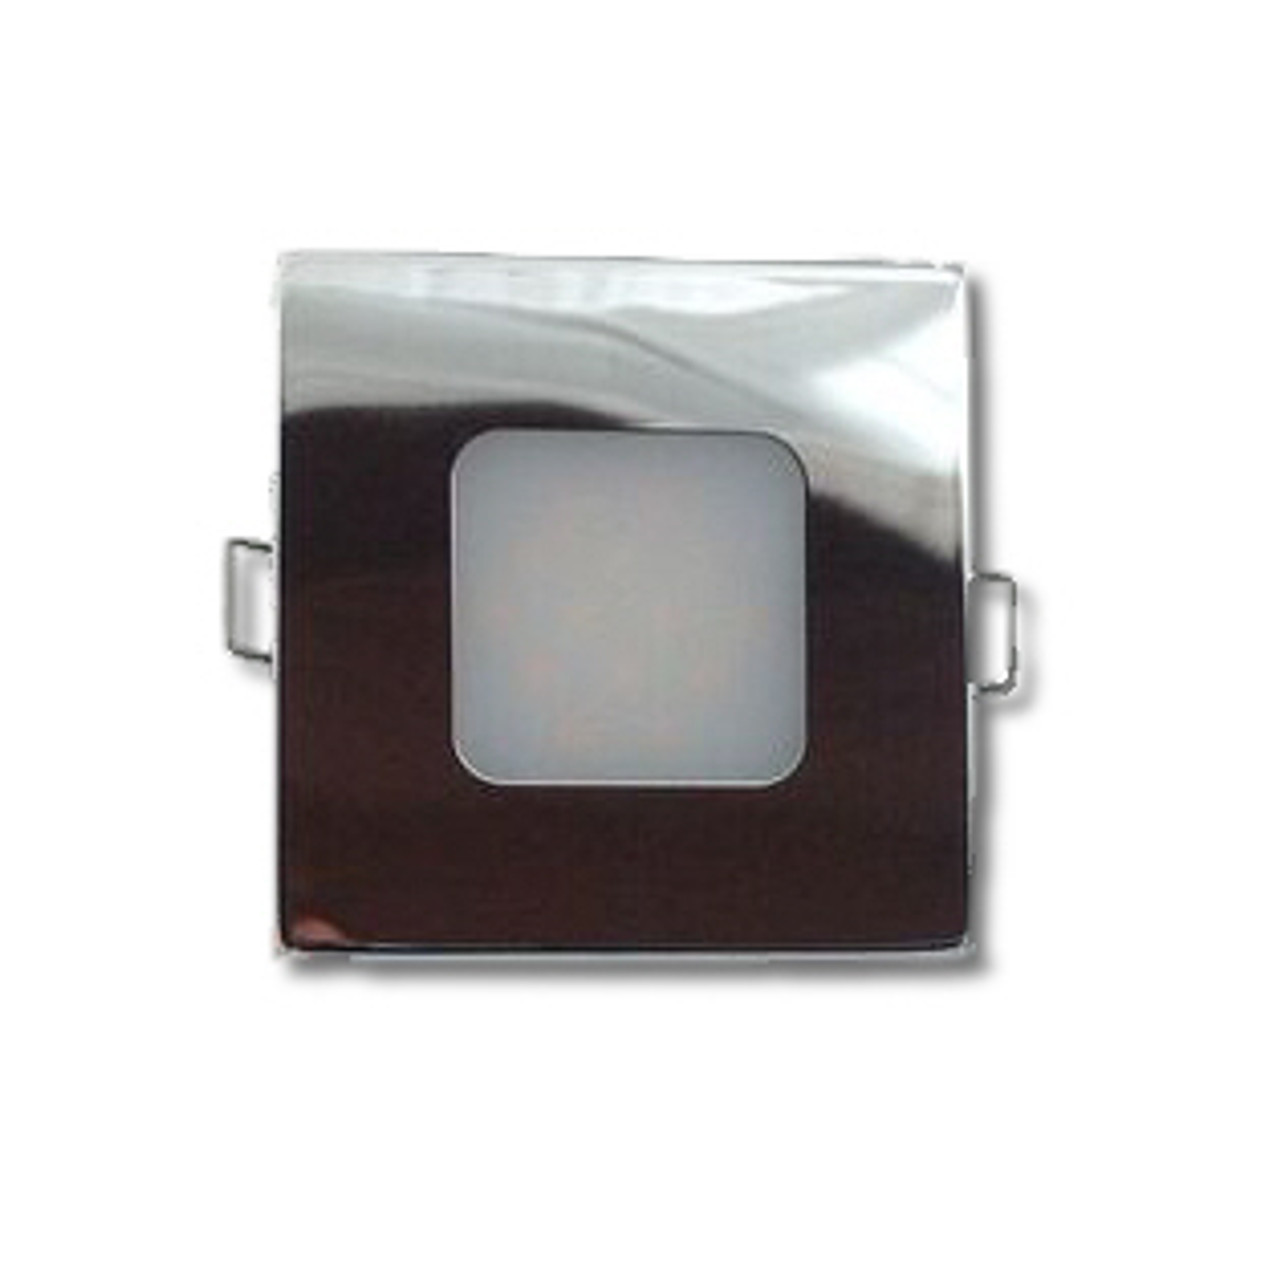 Square LED Boat Light Fixture - Stainless Steel